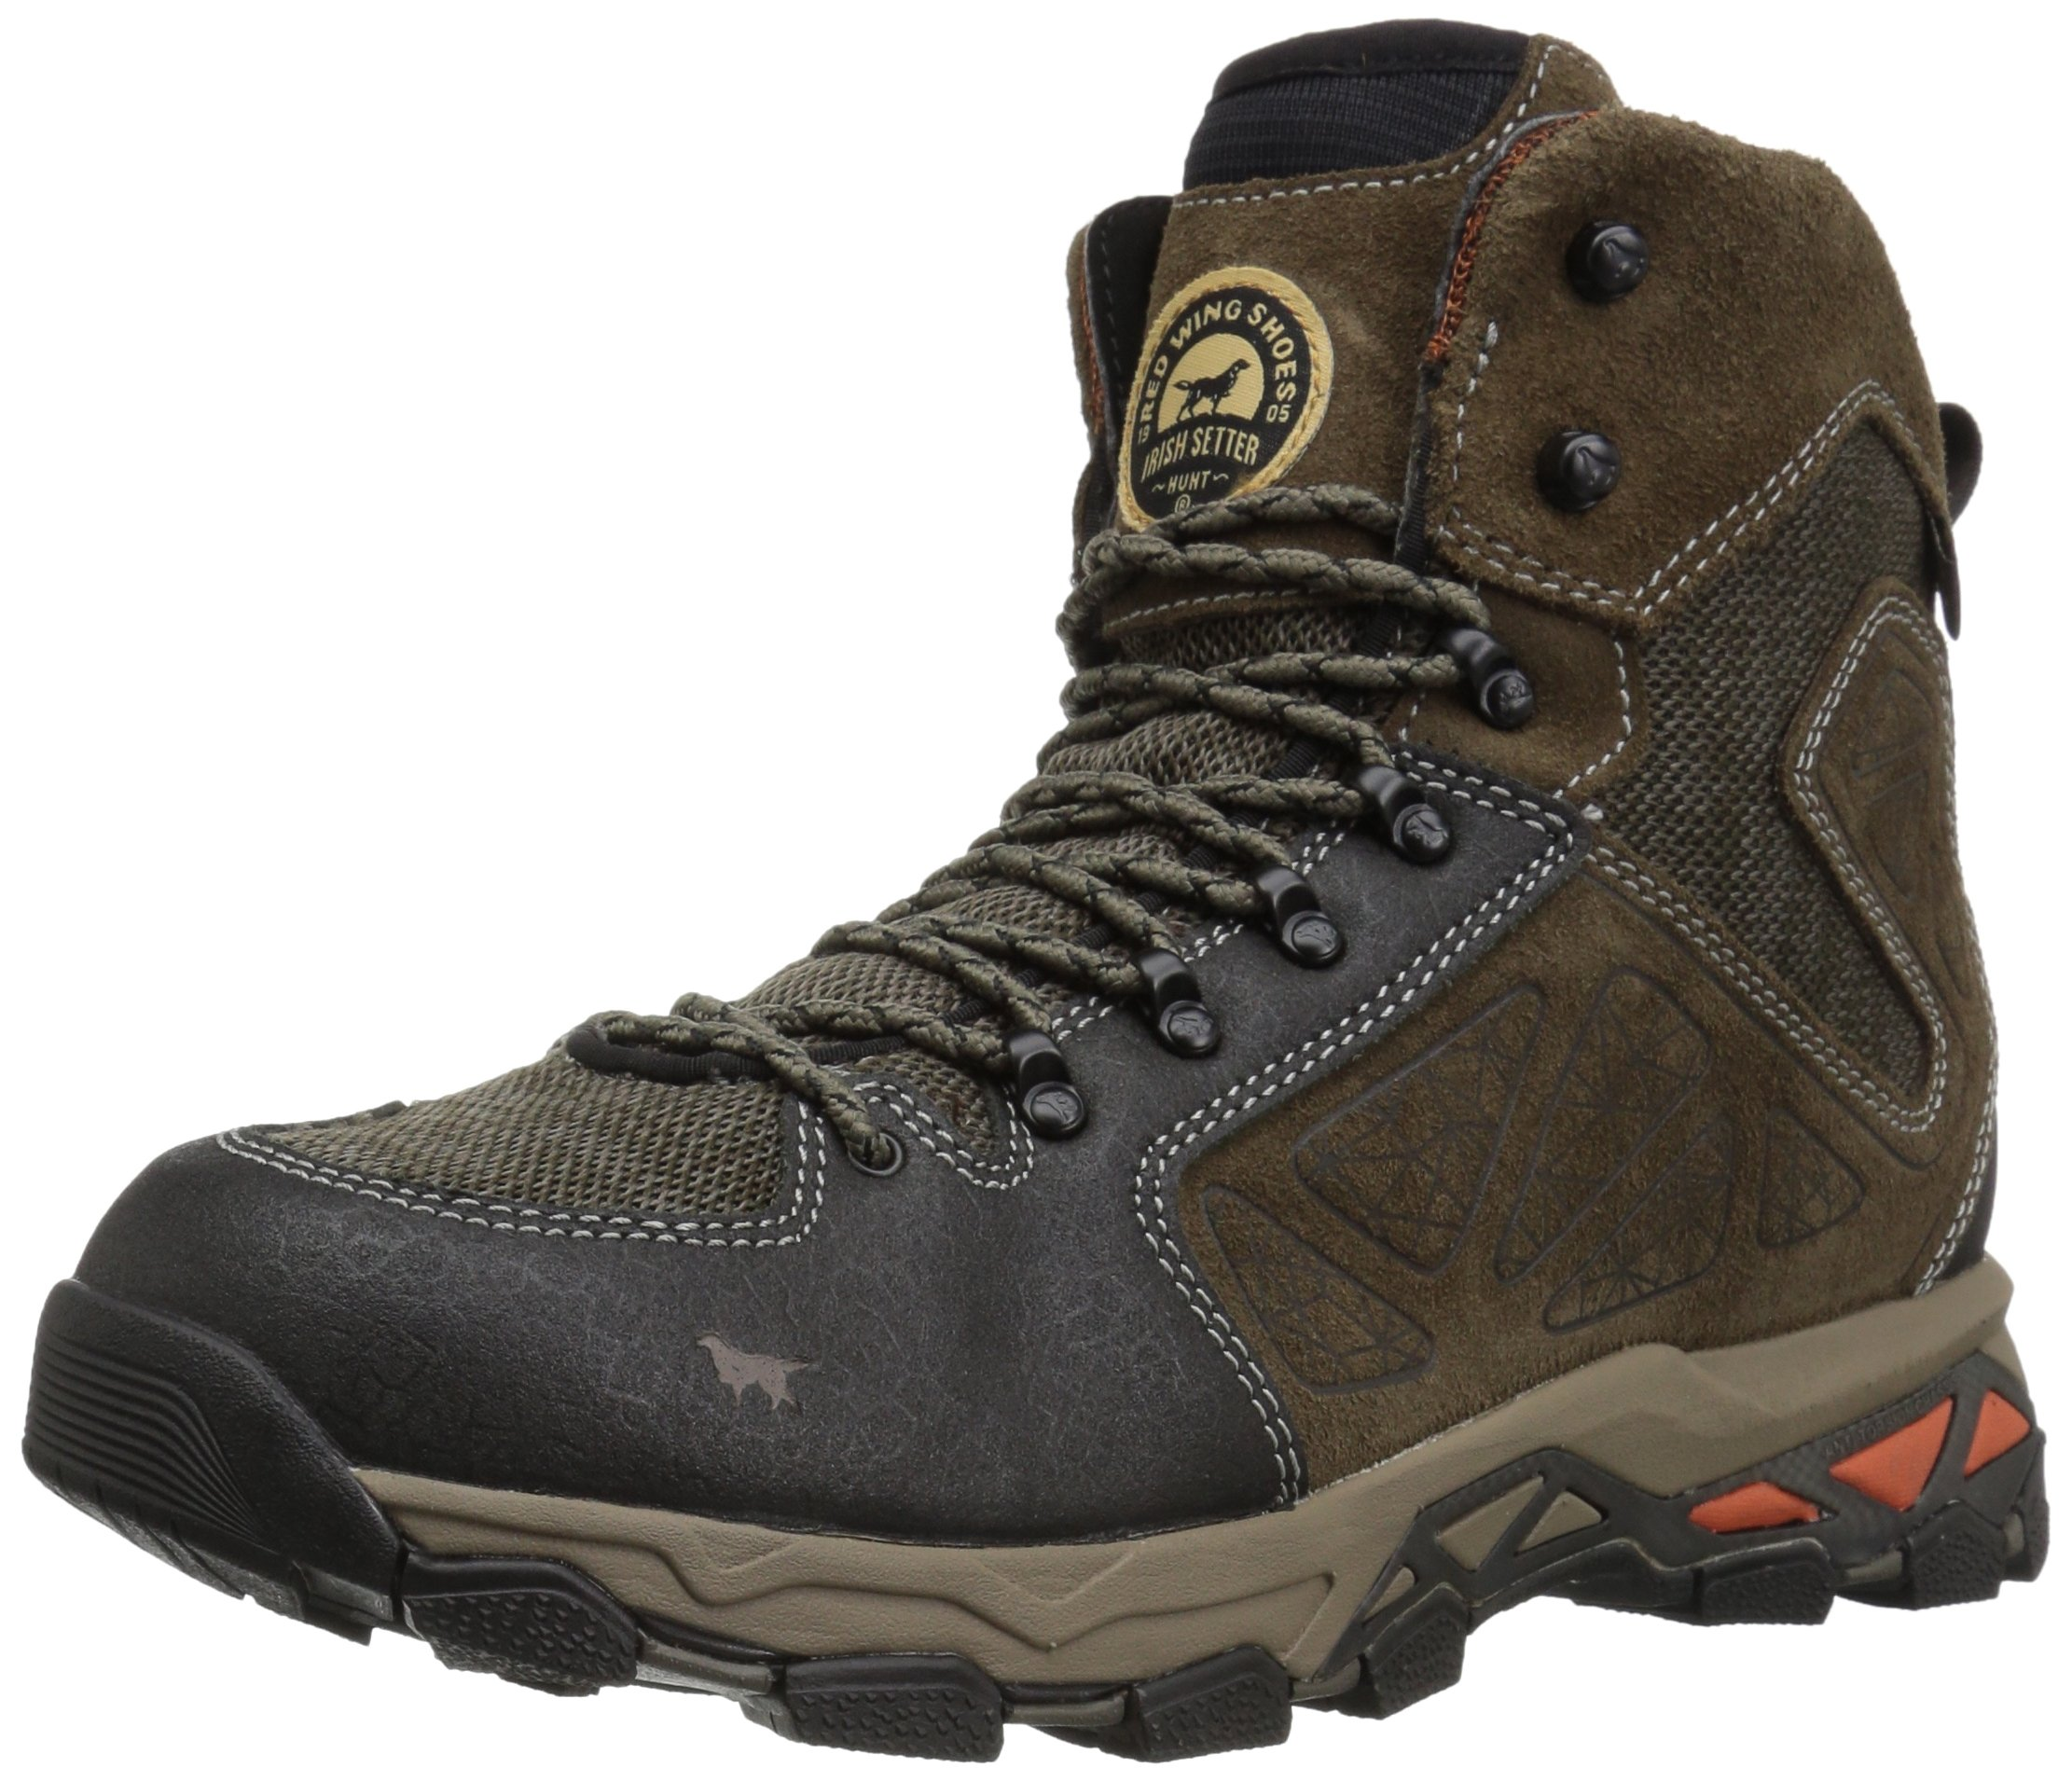 Irish Setter Men's Ravine-2880 Hunting Shoes, Gray/Black, 8.5 2E US